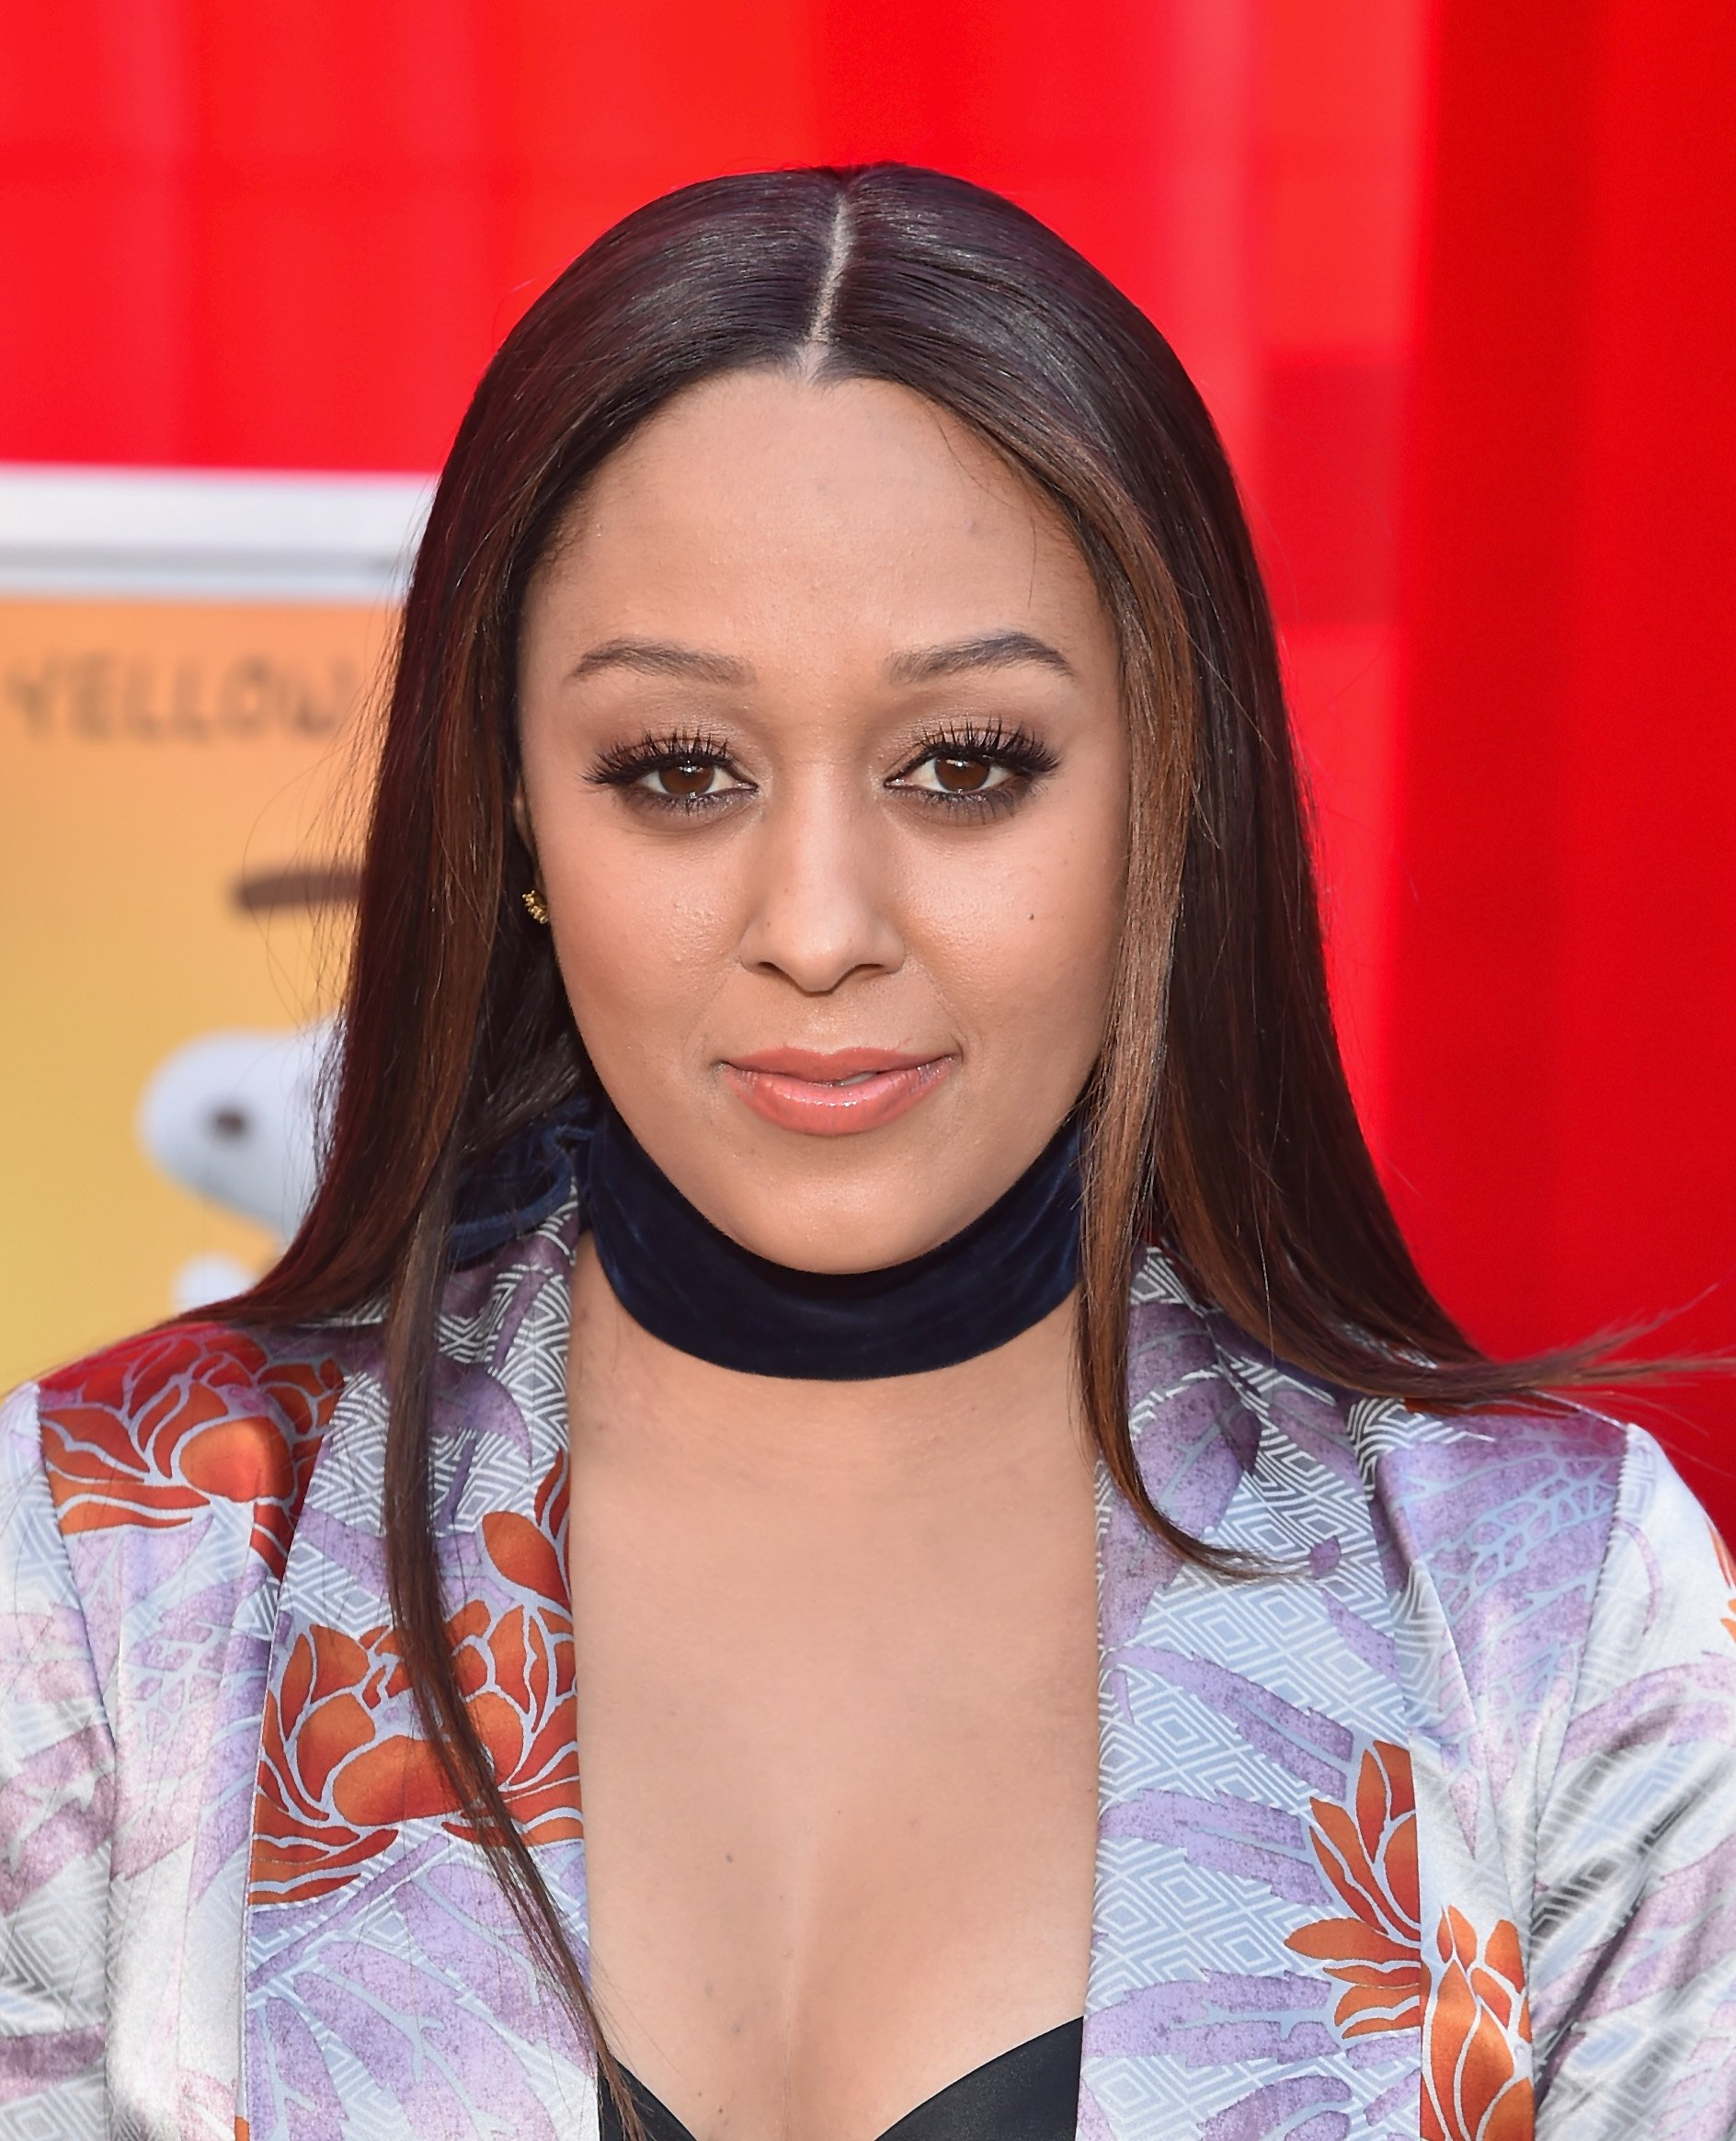 """Tia Mowry at the premiere of """"The Peanuts Movie"""" at The Regency Village Theatre on November 1, 2015 in Westwood, California. 